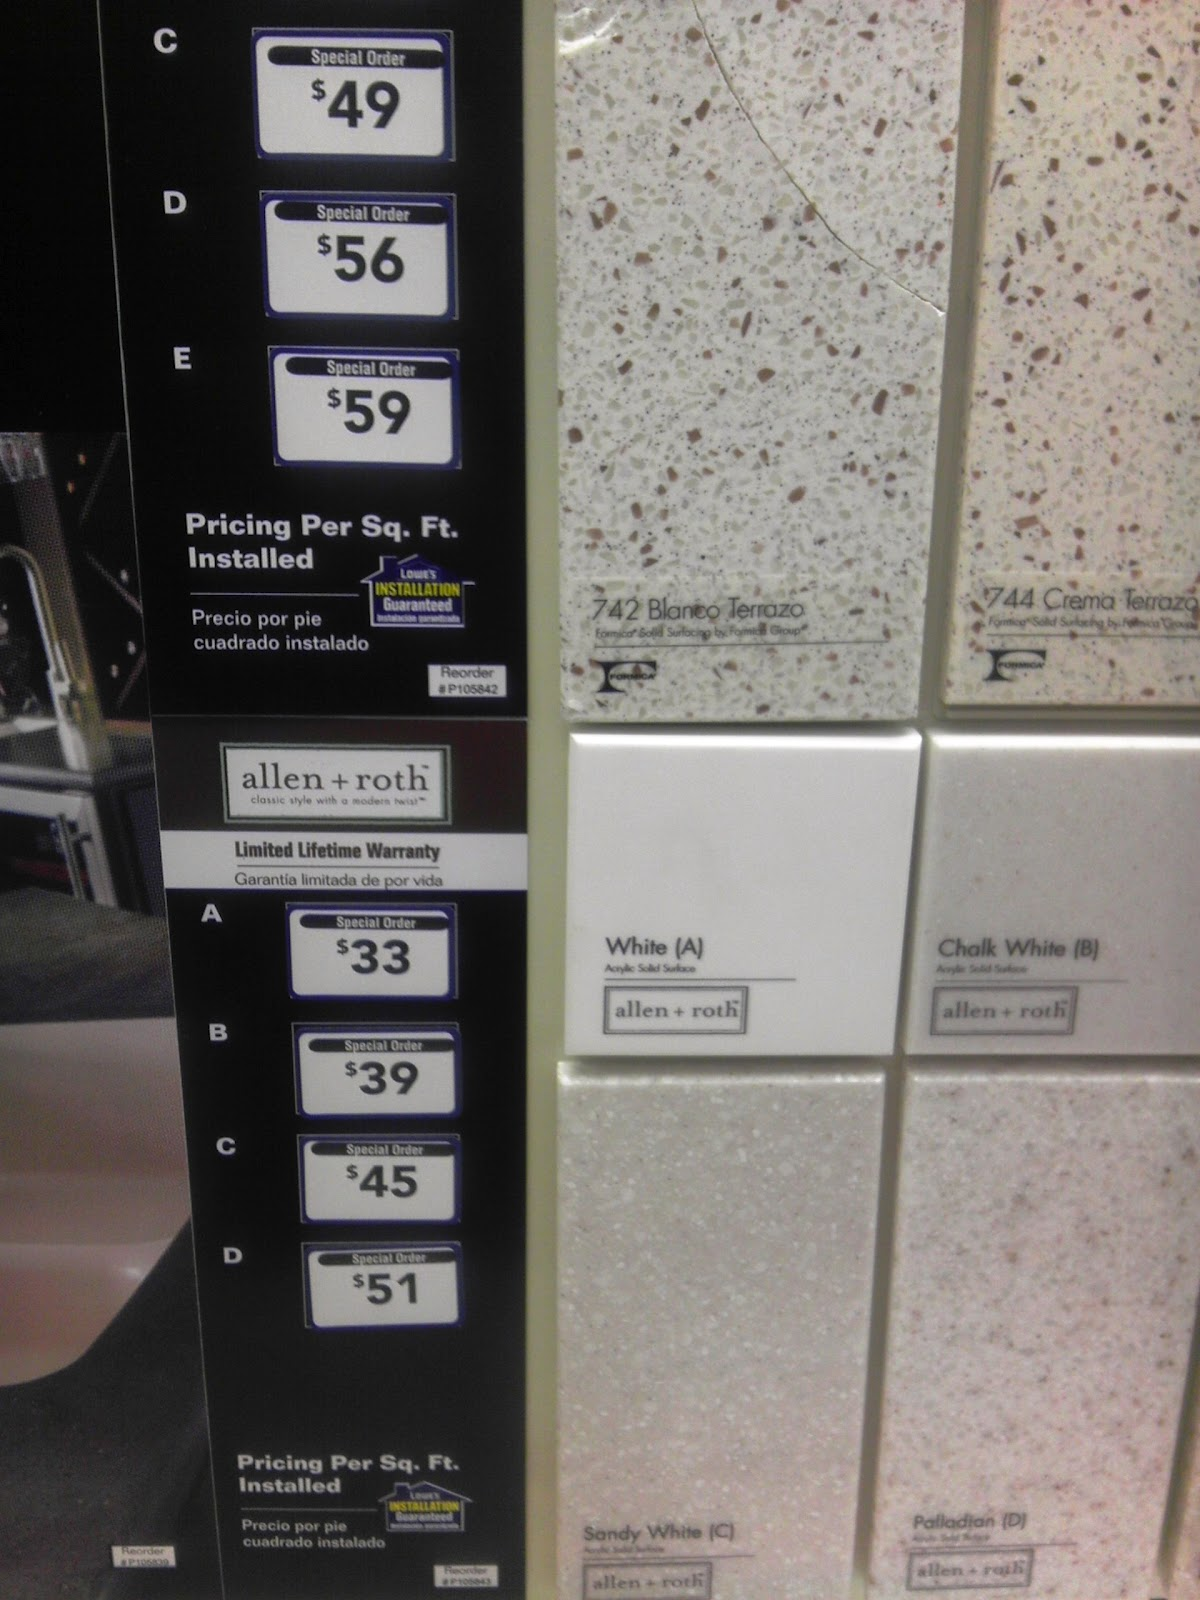 Counter samples home depot center -  Allen Roth Pricing The White Counters I Like Are 33 00 A Square Foot I Need To Do Some Research On The Warranty But The Total Would Be 825 00